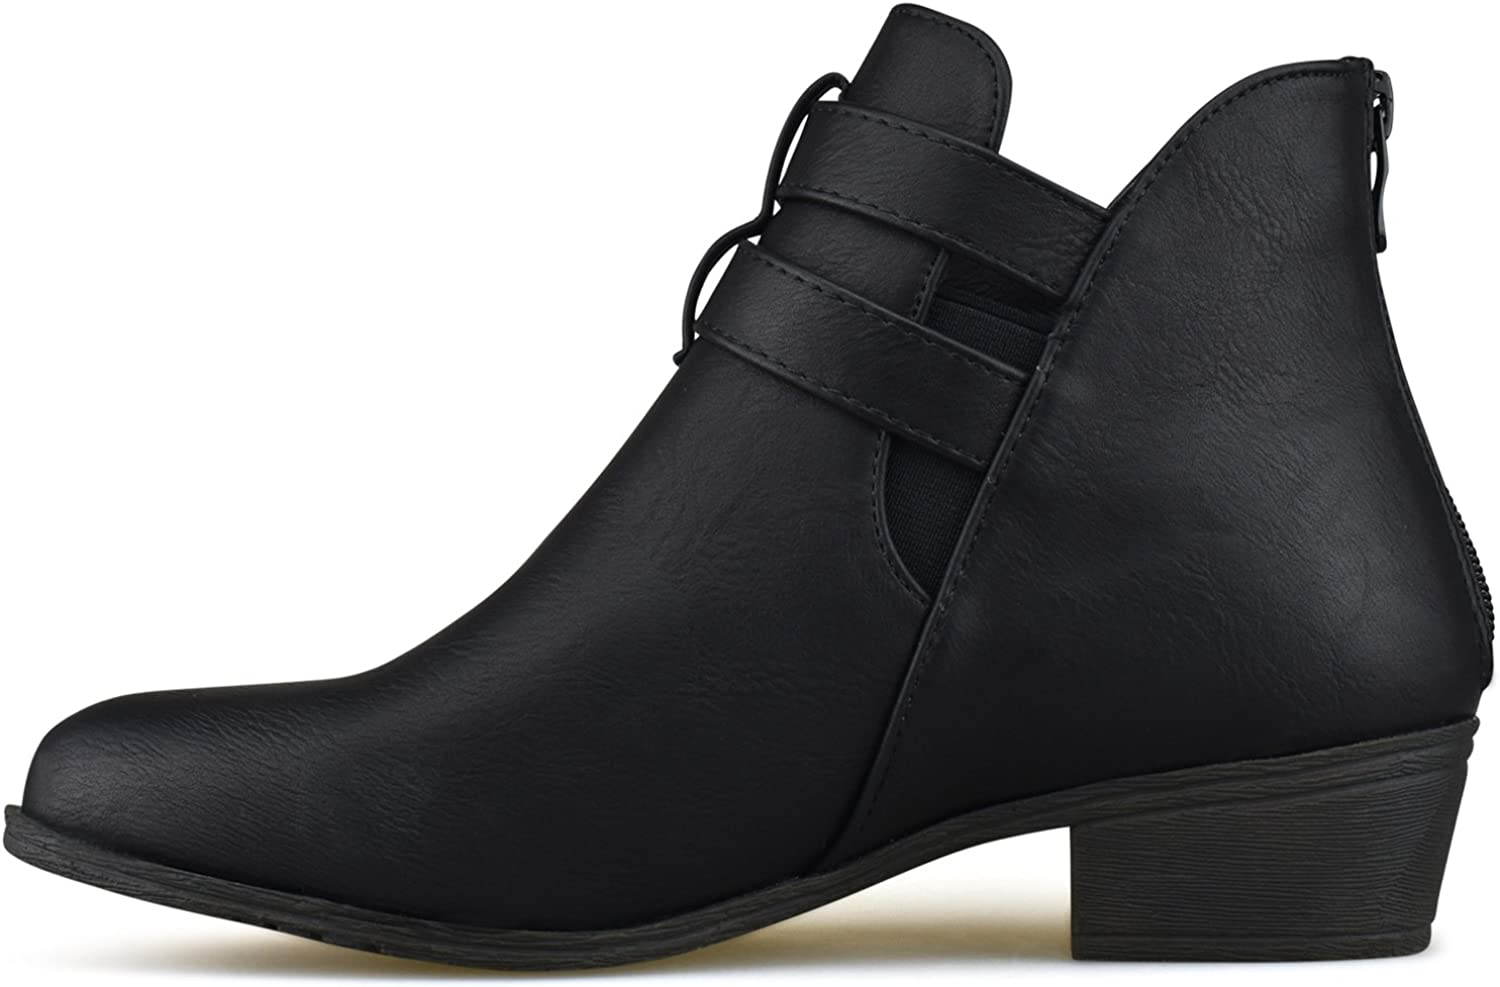 Womens Strappy Buckle Closed Toe Ankle Bootie Low Heel Casual Comfortable Walking Boot Premier Standard